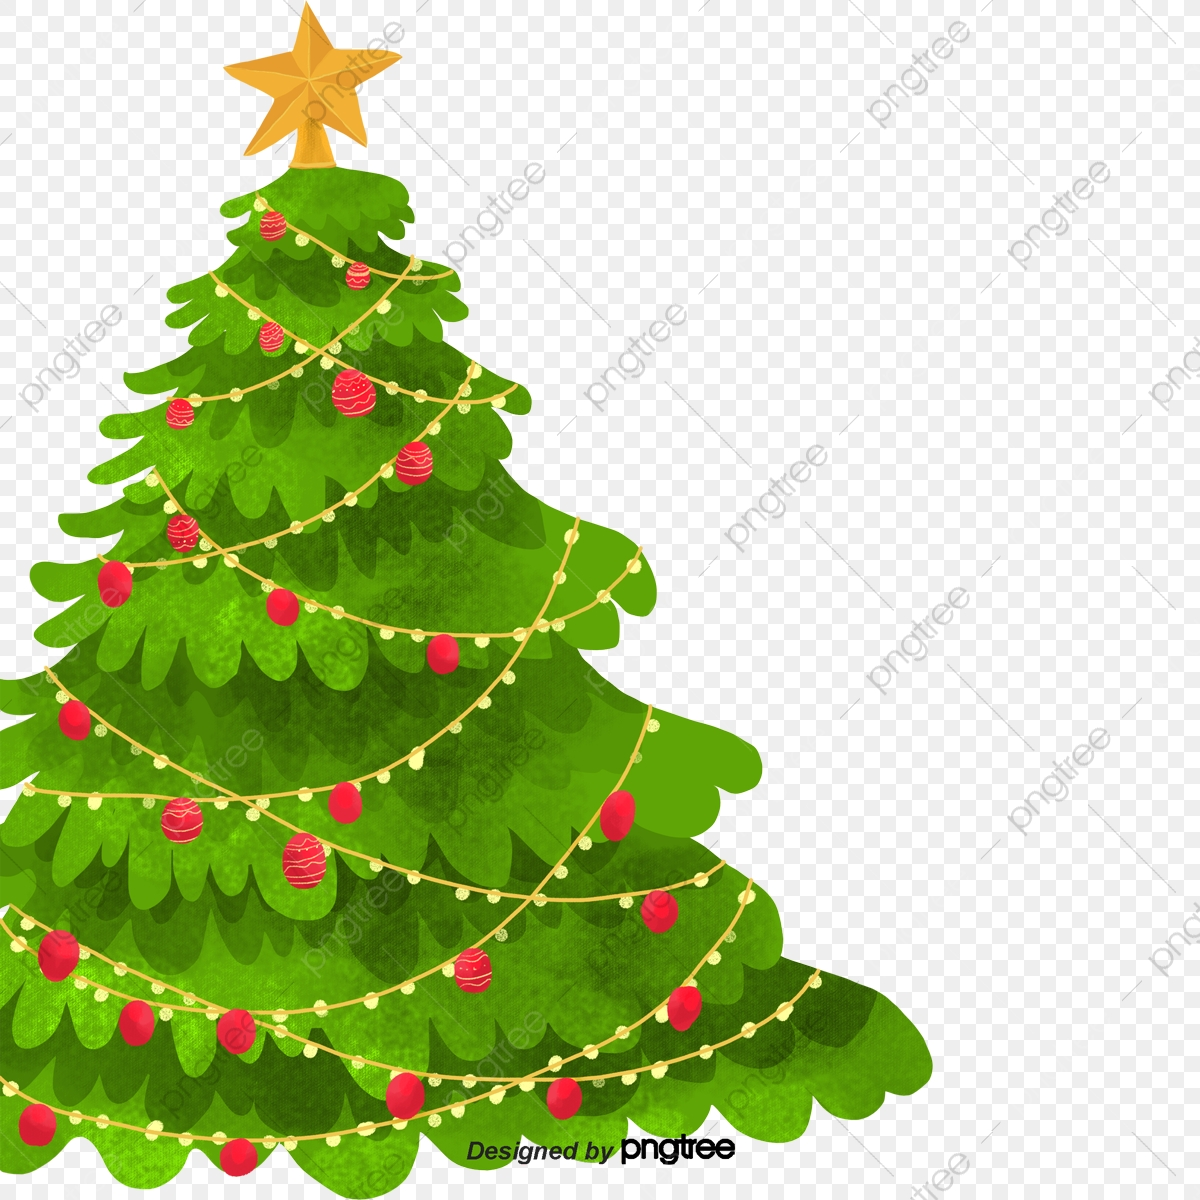 Cartoon Christmas Tree Png Images Vector And Psd Files Free Download On Pngtree Download 2,504 cartoon christmas tree free vectors. https pngtree com freepng cartoon christmas tree 4283591 html